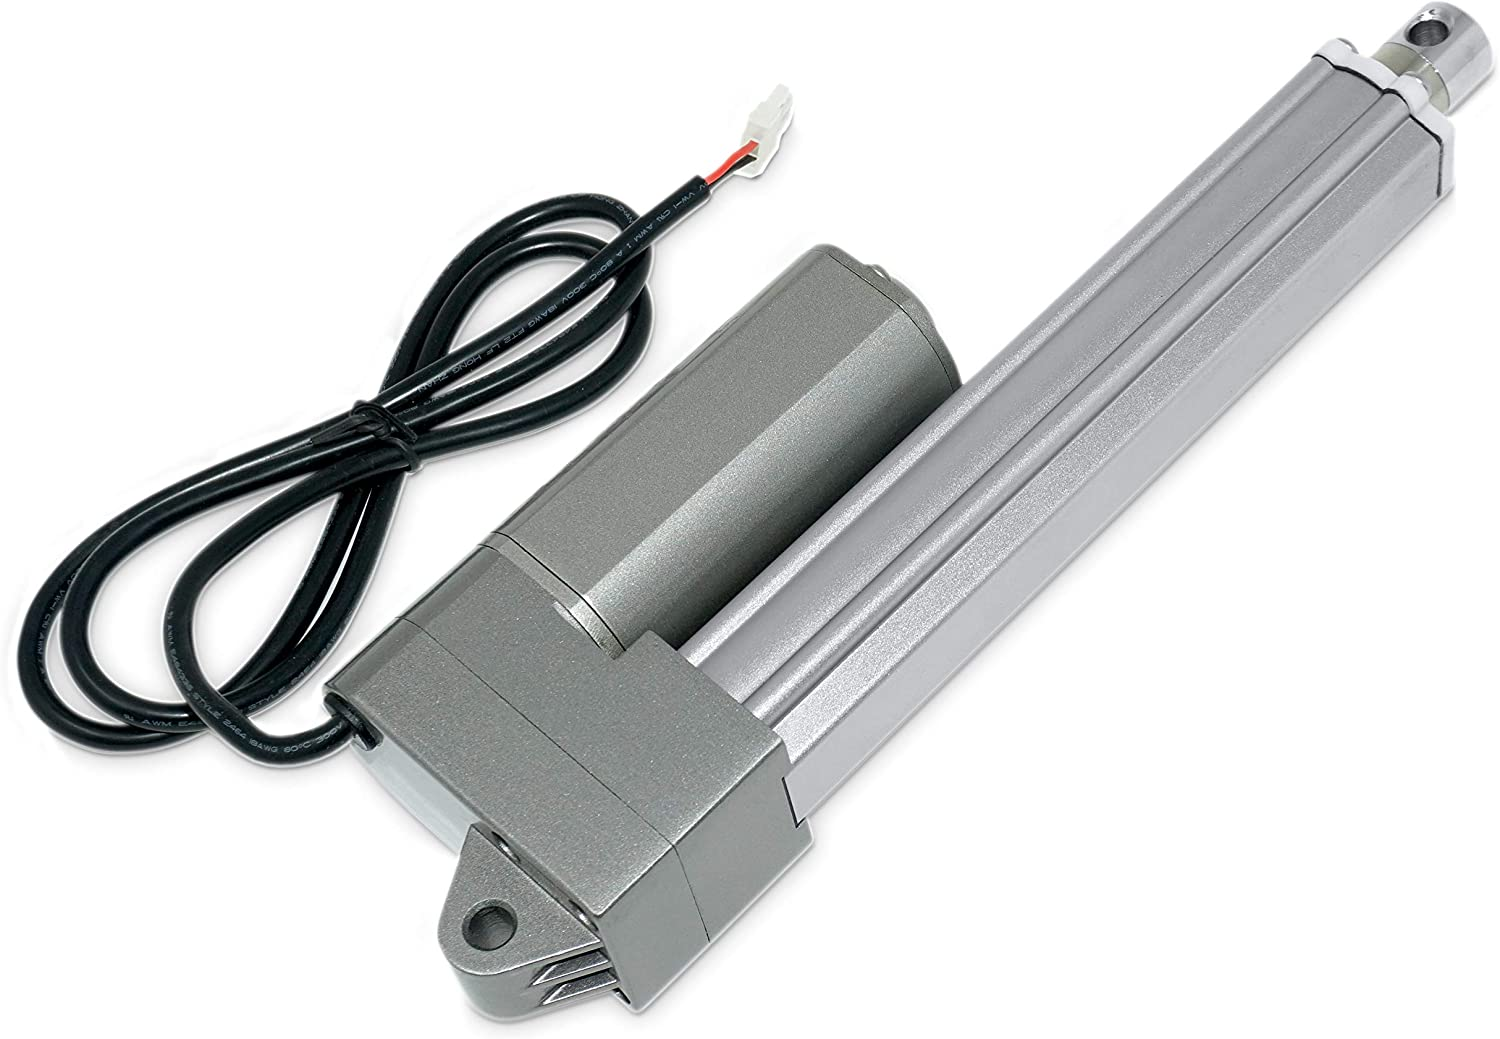 High Force Robotics| Model PA-09-8-330 12V Industrial Linear Electric Actuator // 330 lbs | Stainless Steel Rod 8 in Durable Stroke| for Marine Brushed DC Motor Automation